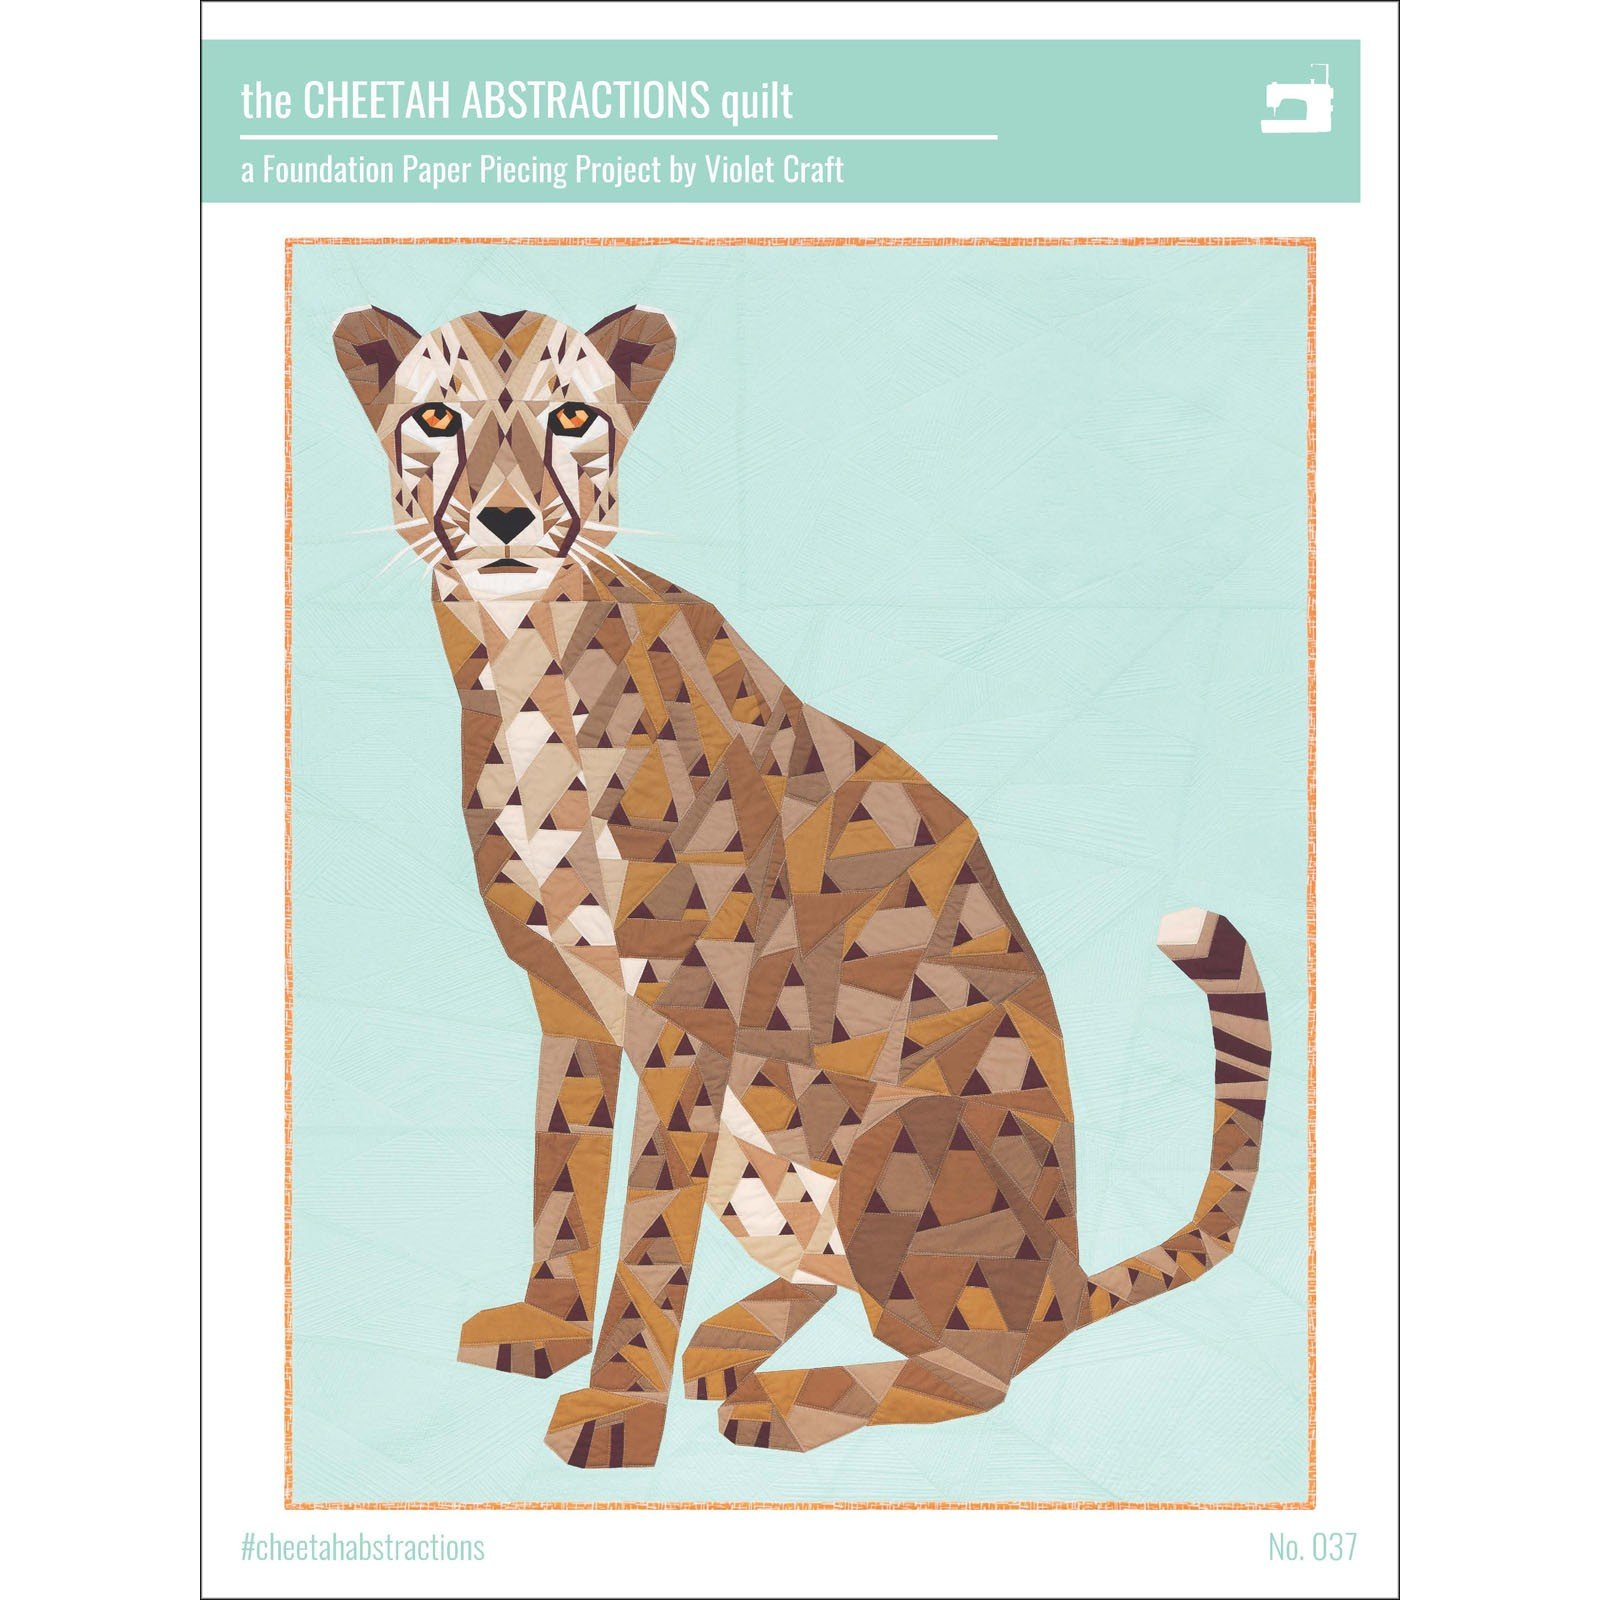 Pattern. NEW! Cheetah Abstractions Quilt Violet Craft